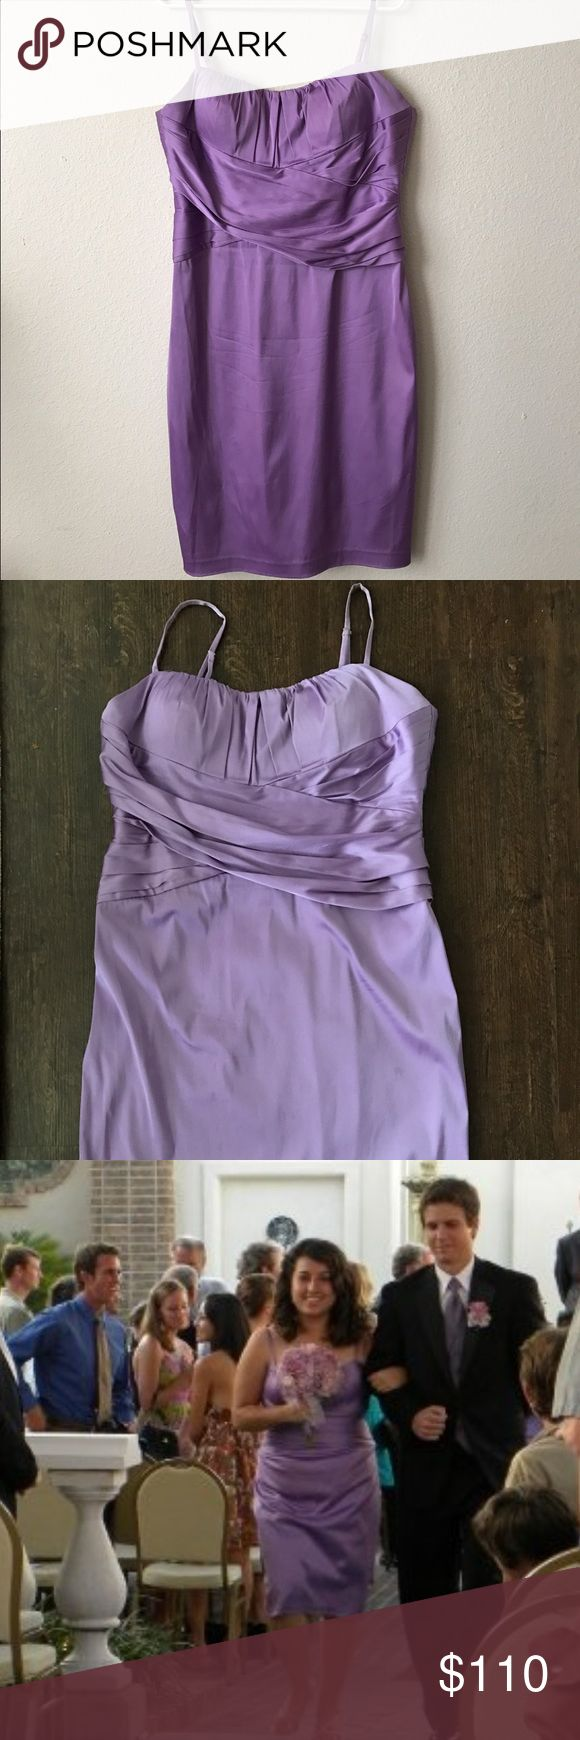 Lavender cocktail dress Beautiful lavender dress, great for weddings and cocktail parties. Definitely brings out your feminine side. I have only worn it once for a wedding. :) Dresses Wedding